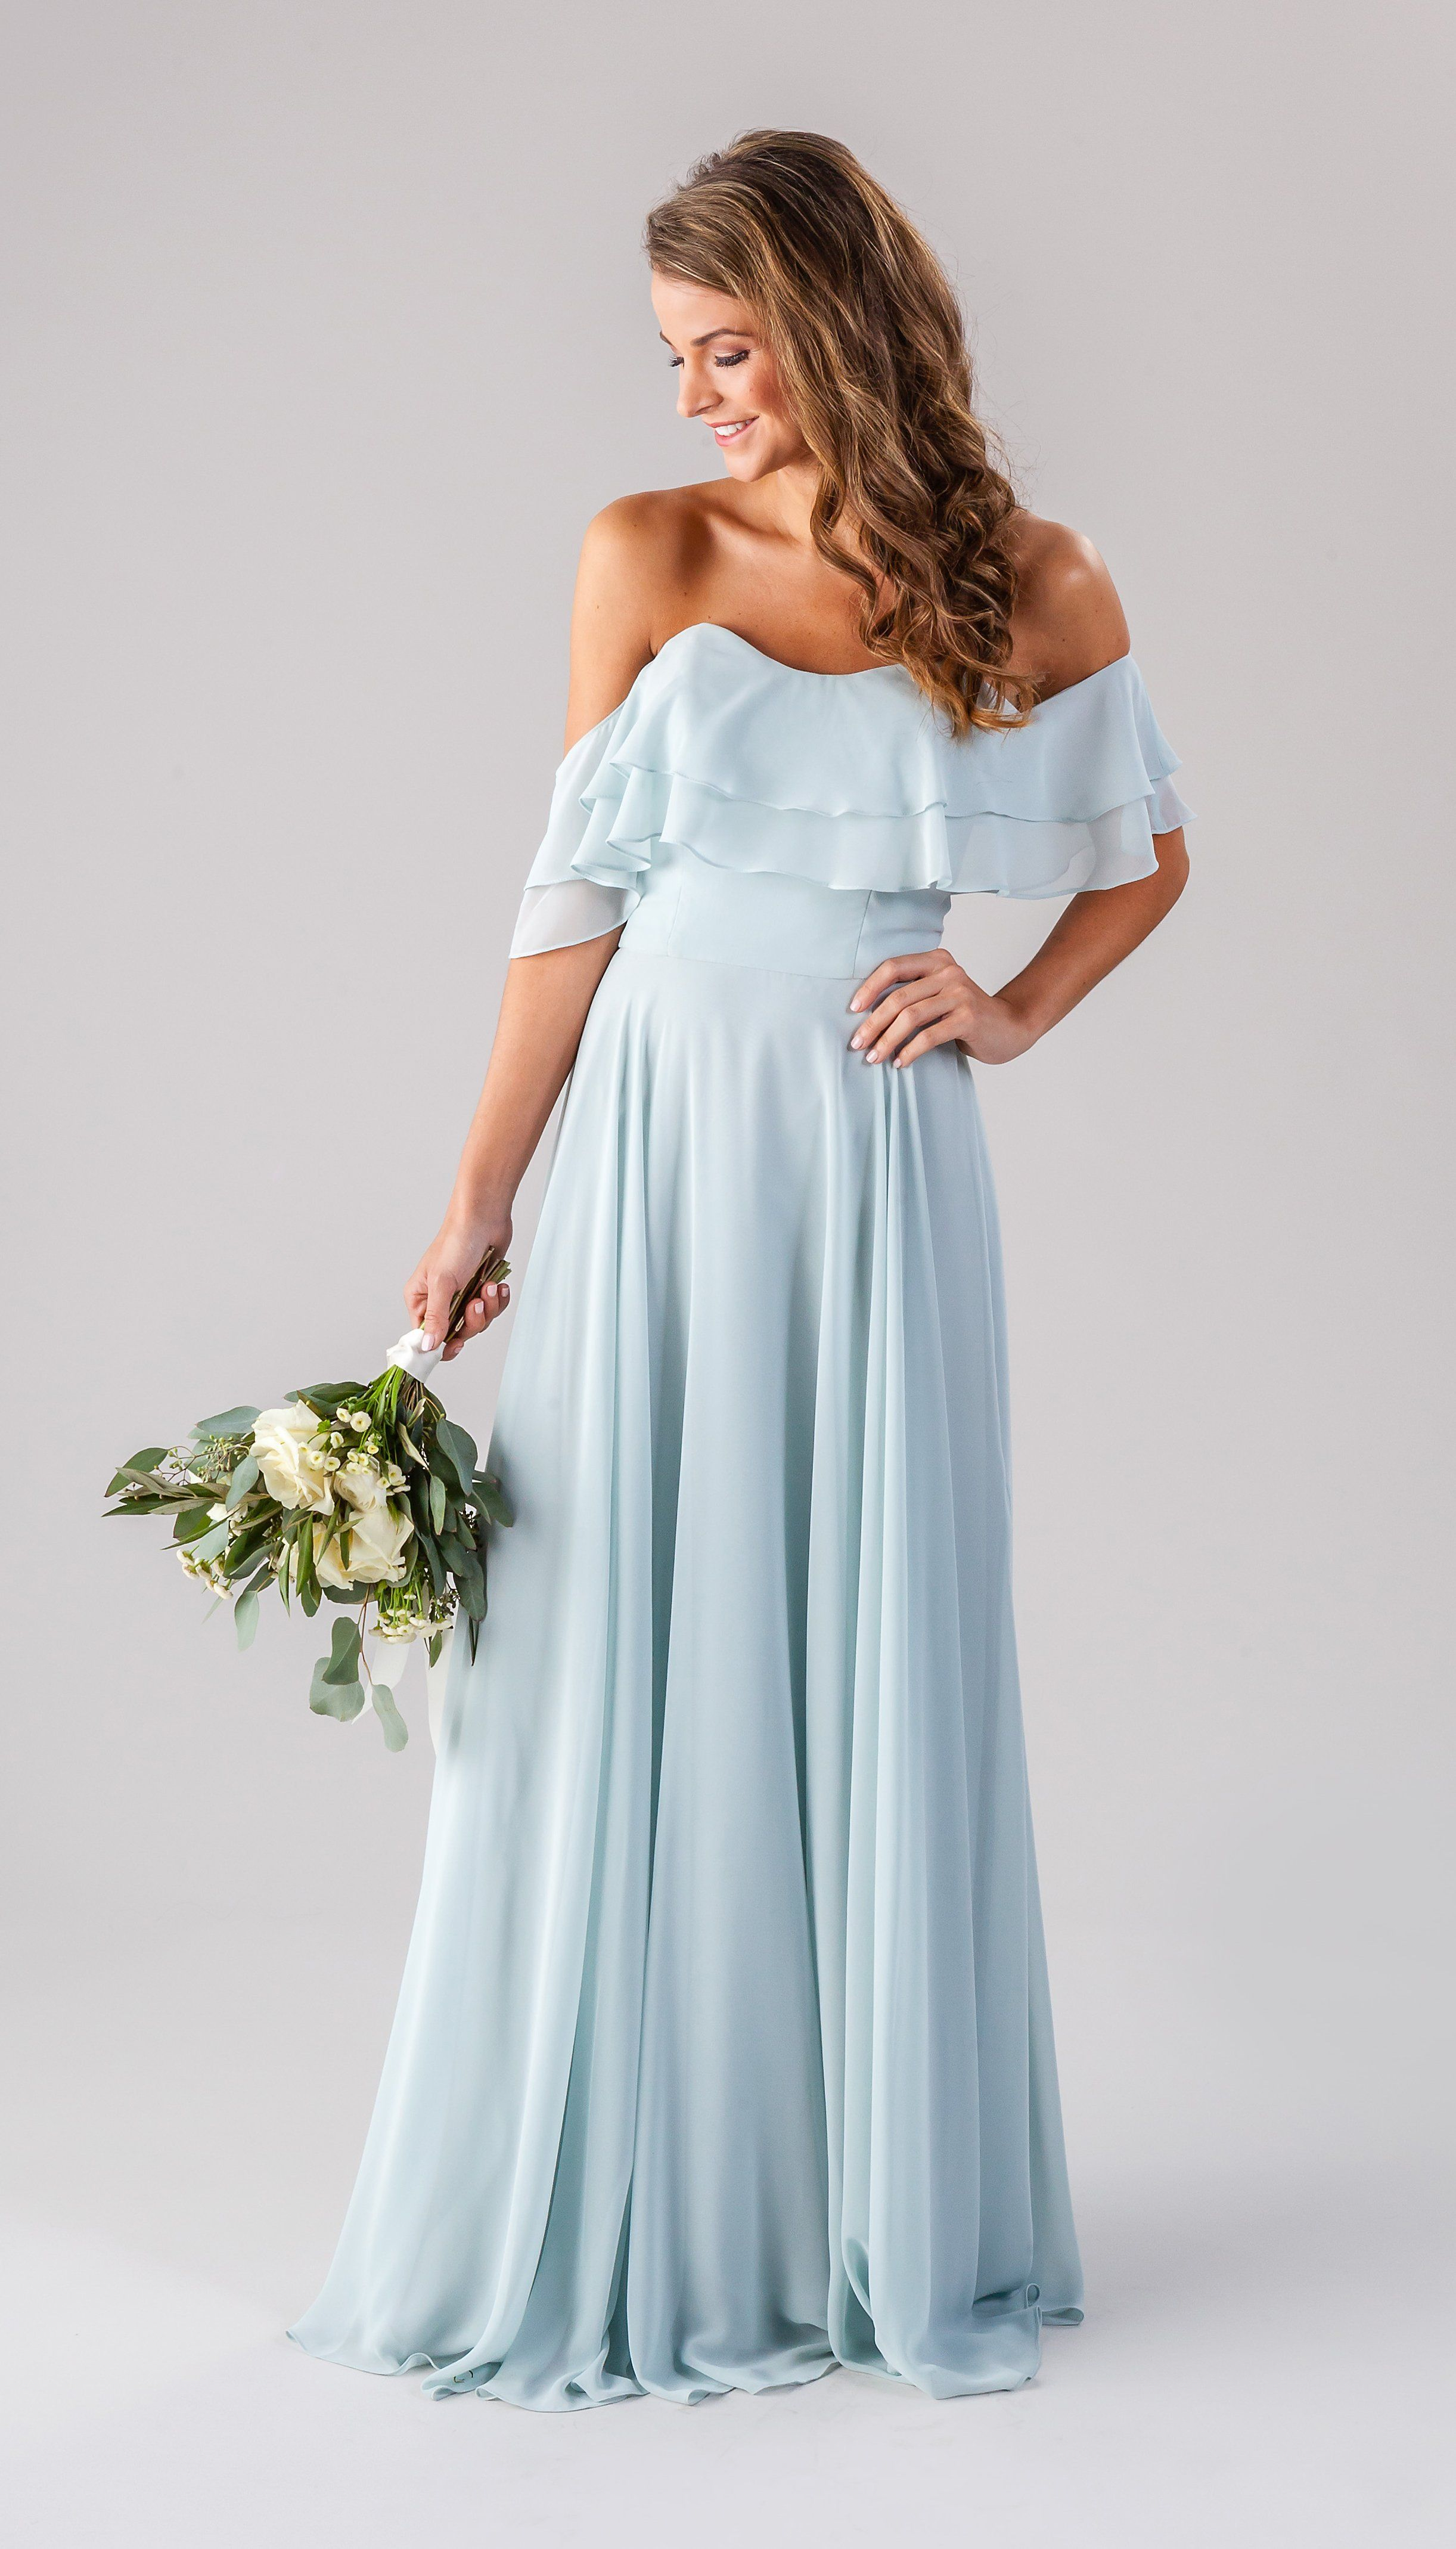 Allison | Boho bridesmaid dresses, Mix match bridesmaids and Weddings